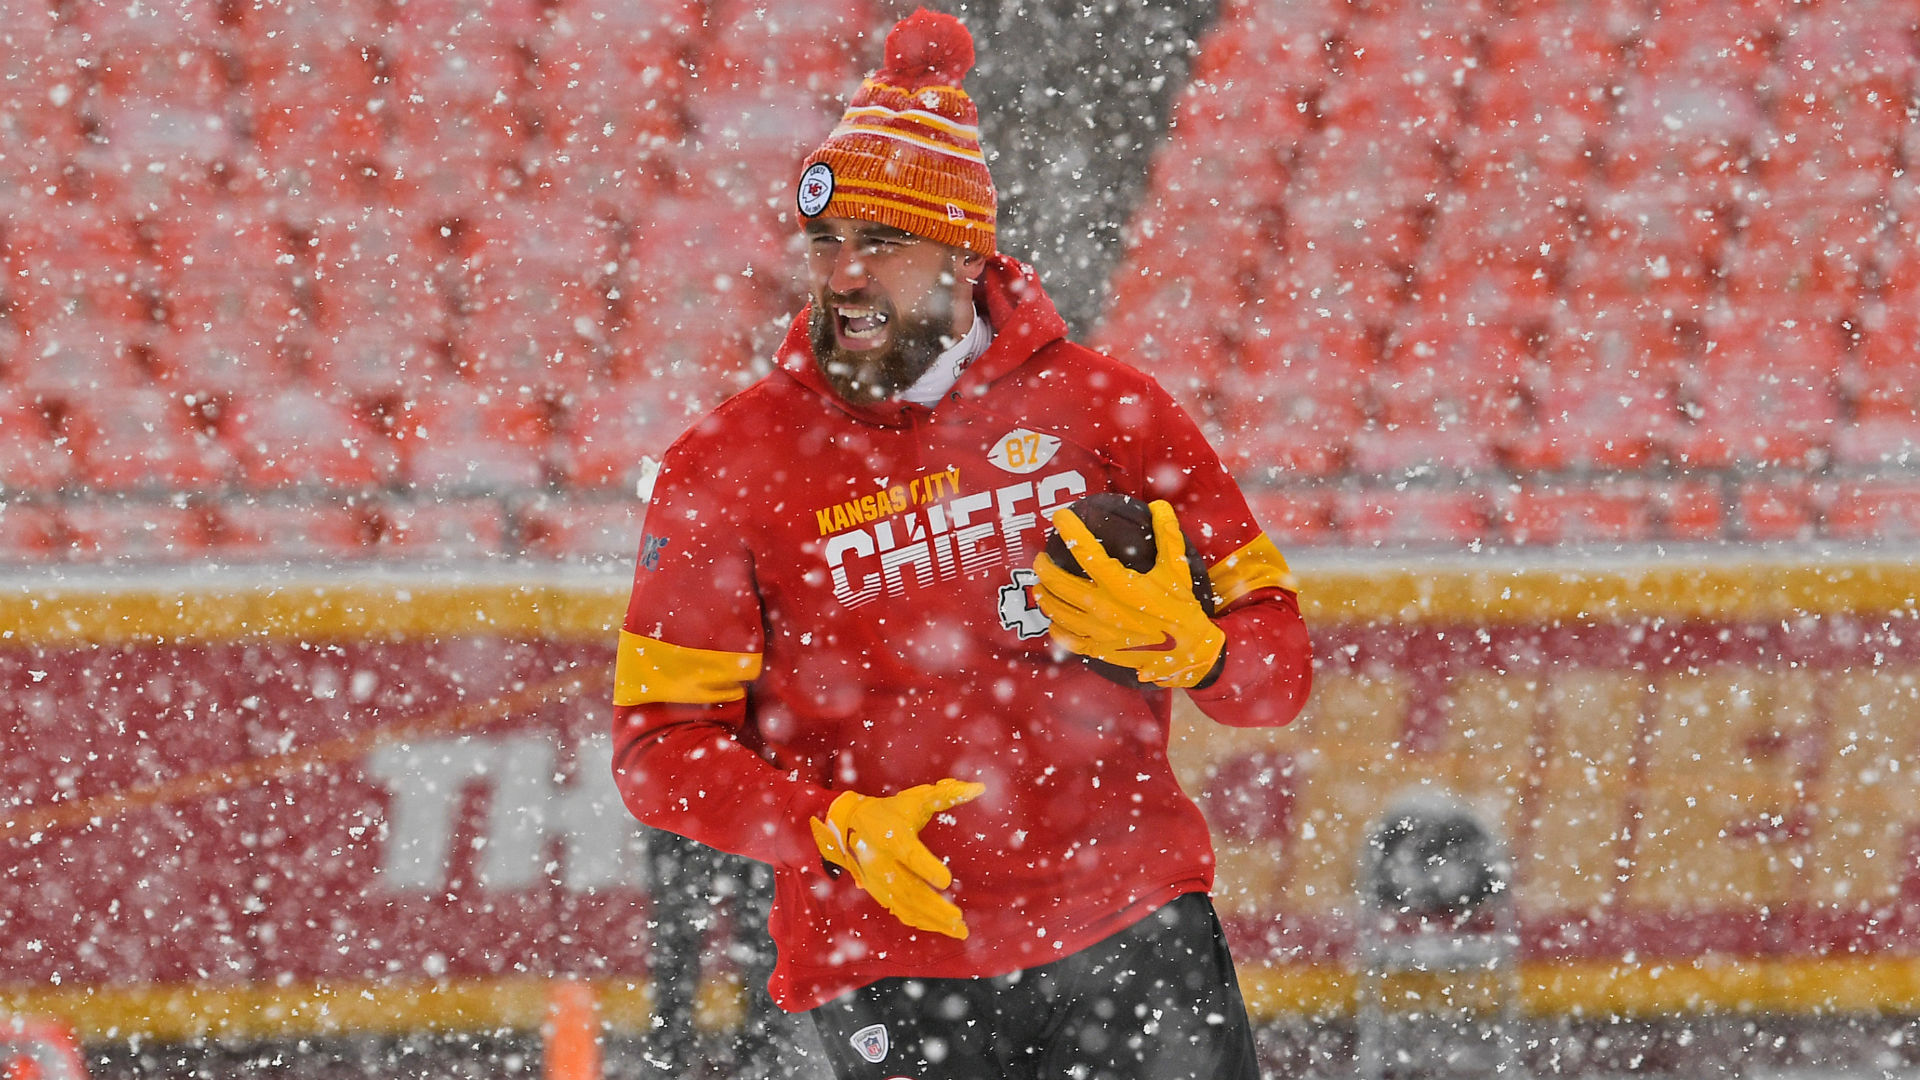 Despite having to deal with both the Denver Broncos and heavy snow, Travis Kelce was able to set an NFL record on Sunday.